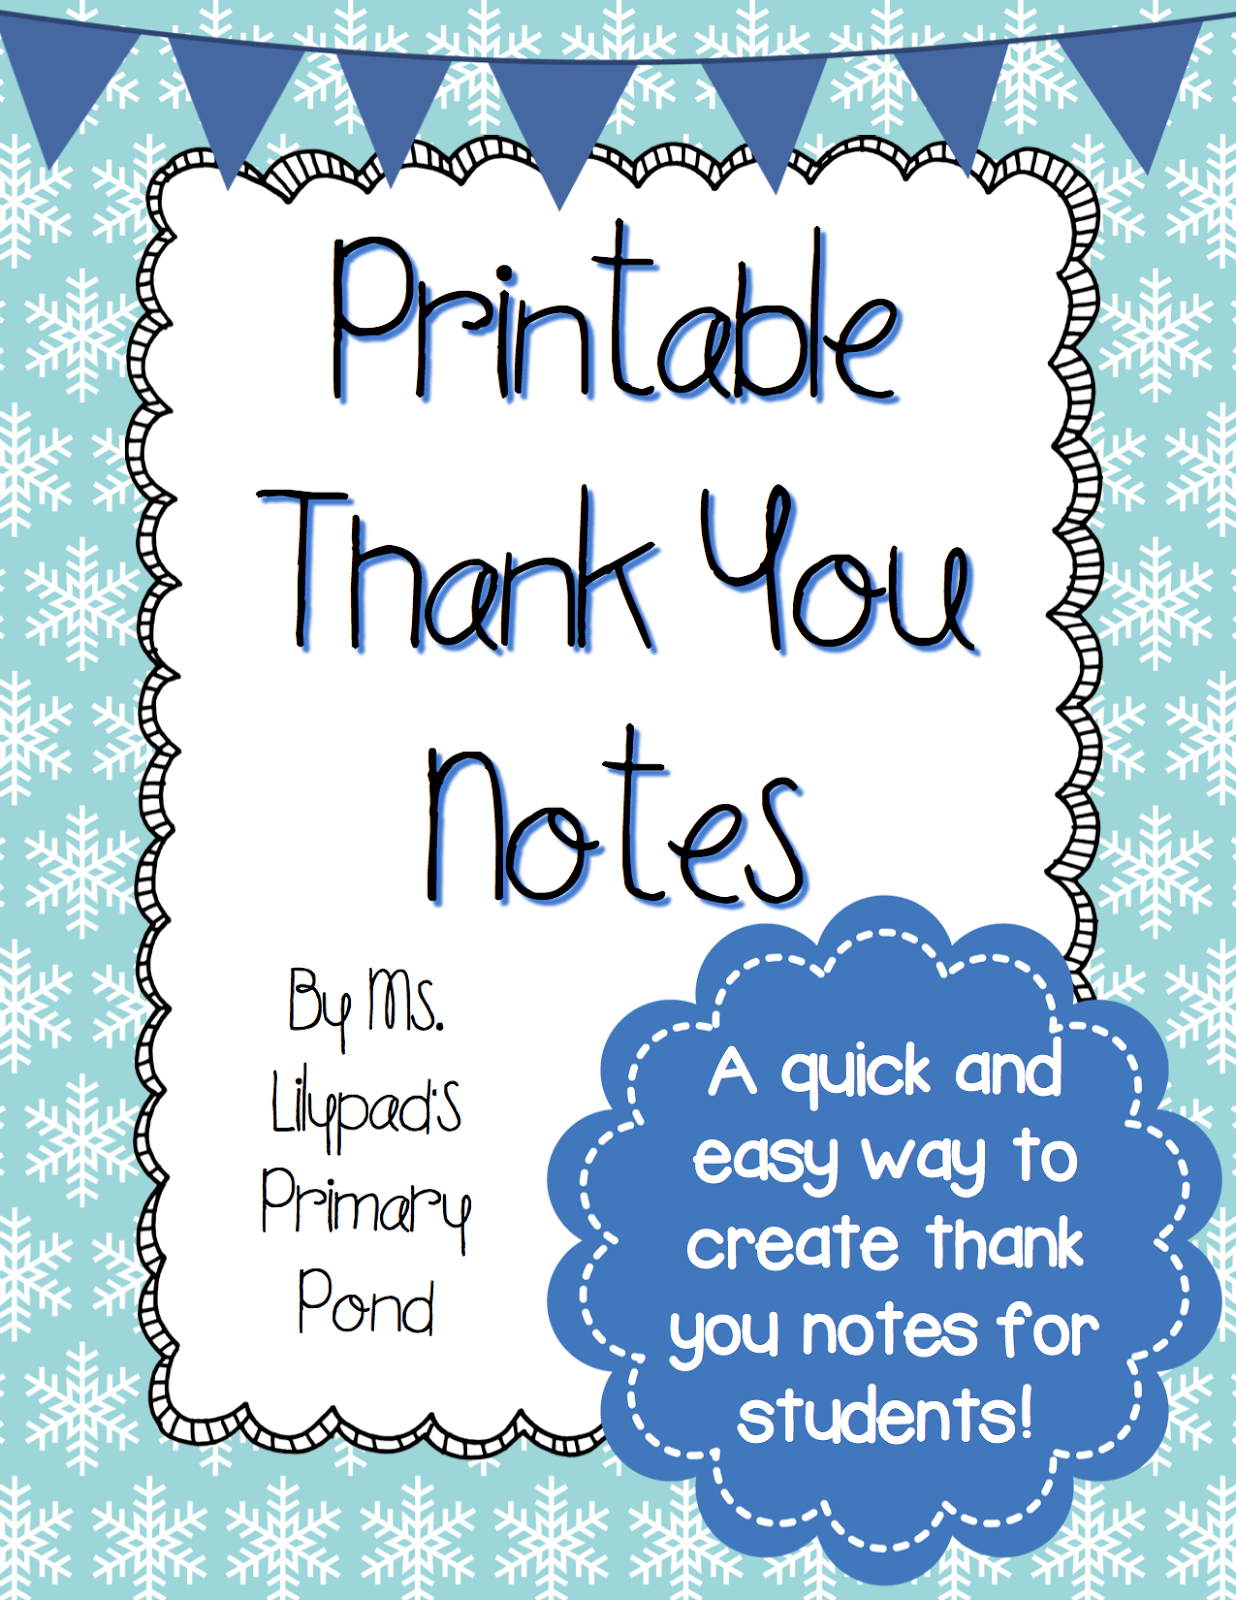 thank you notes to students for gifts